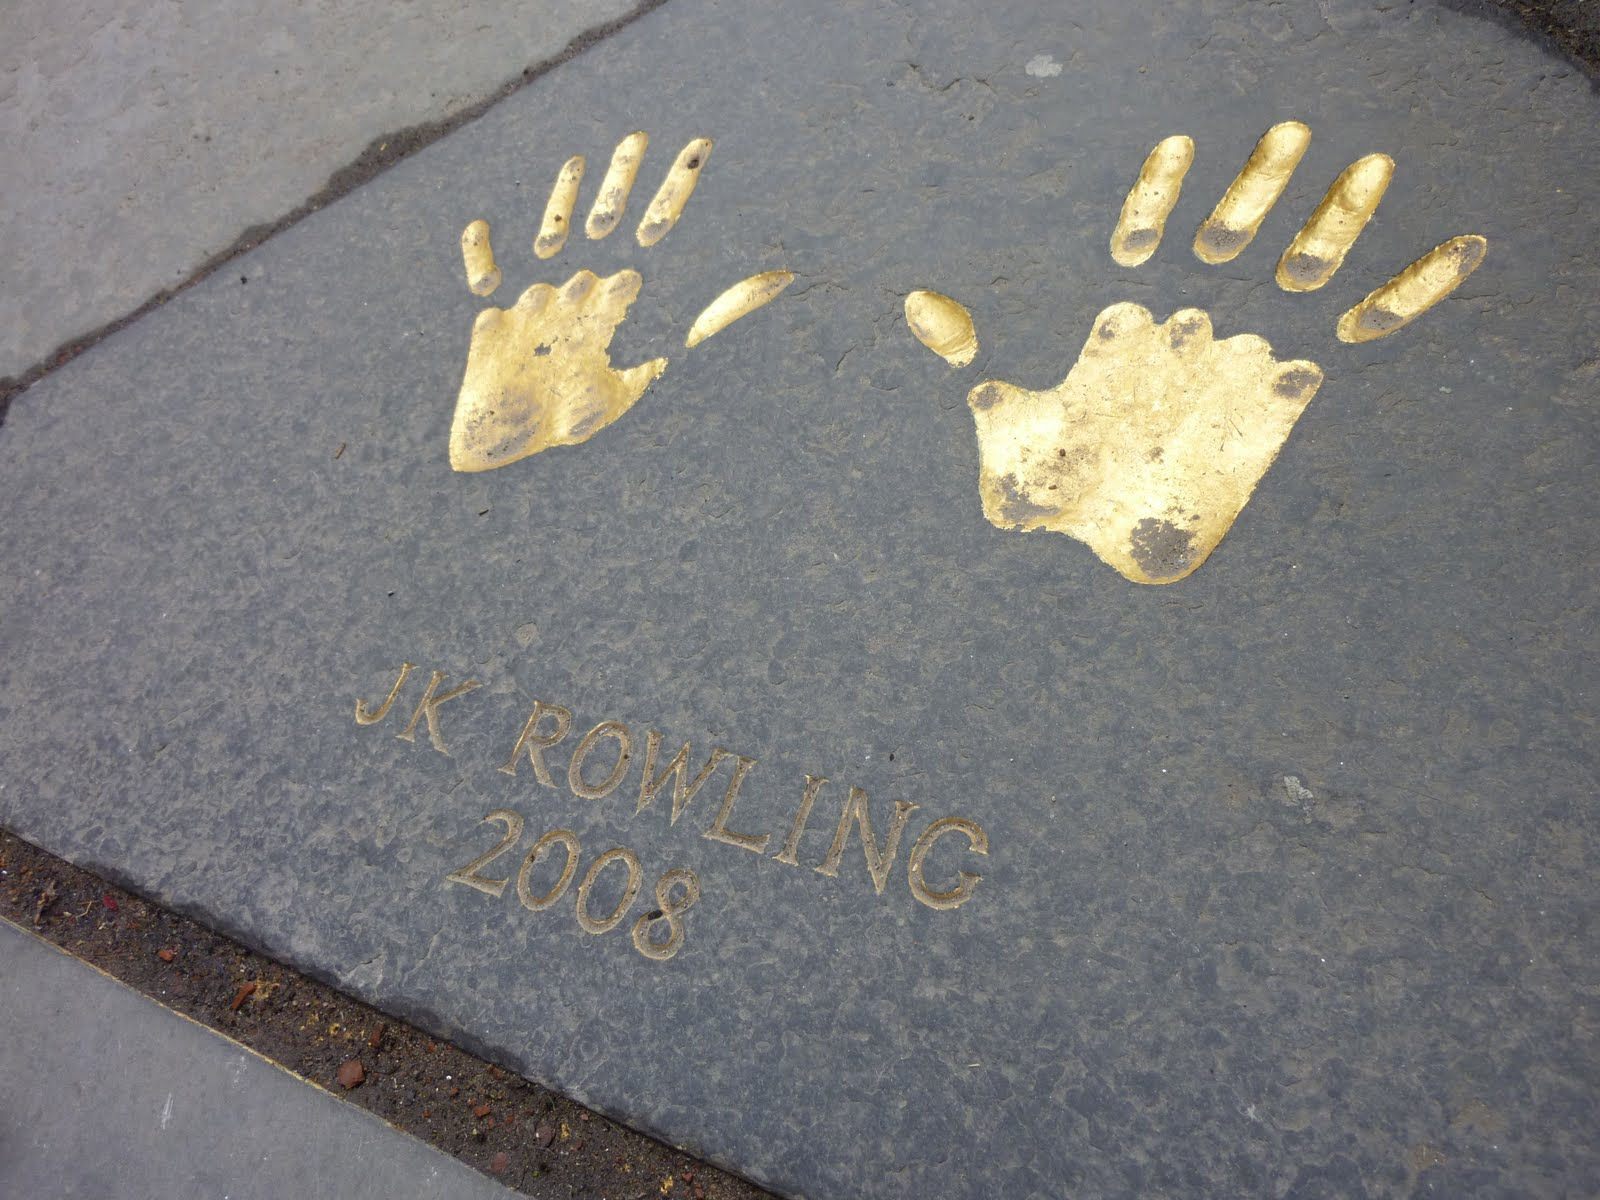 J.K. Rowling: the hands & handprints of the UK author! (Harry Potter) Jk+rowling+edinburgh